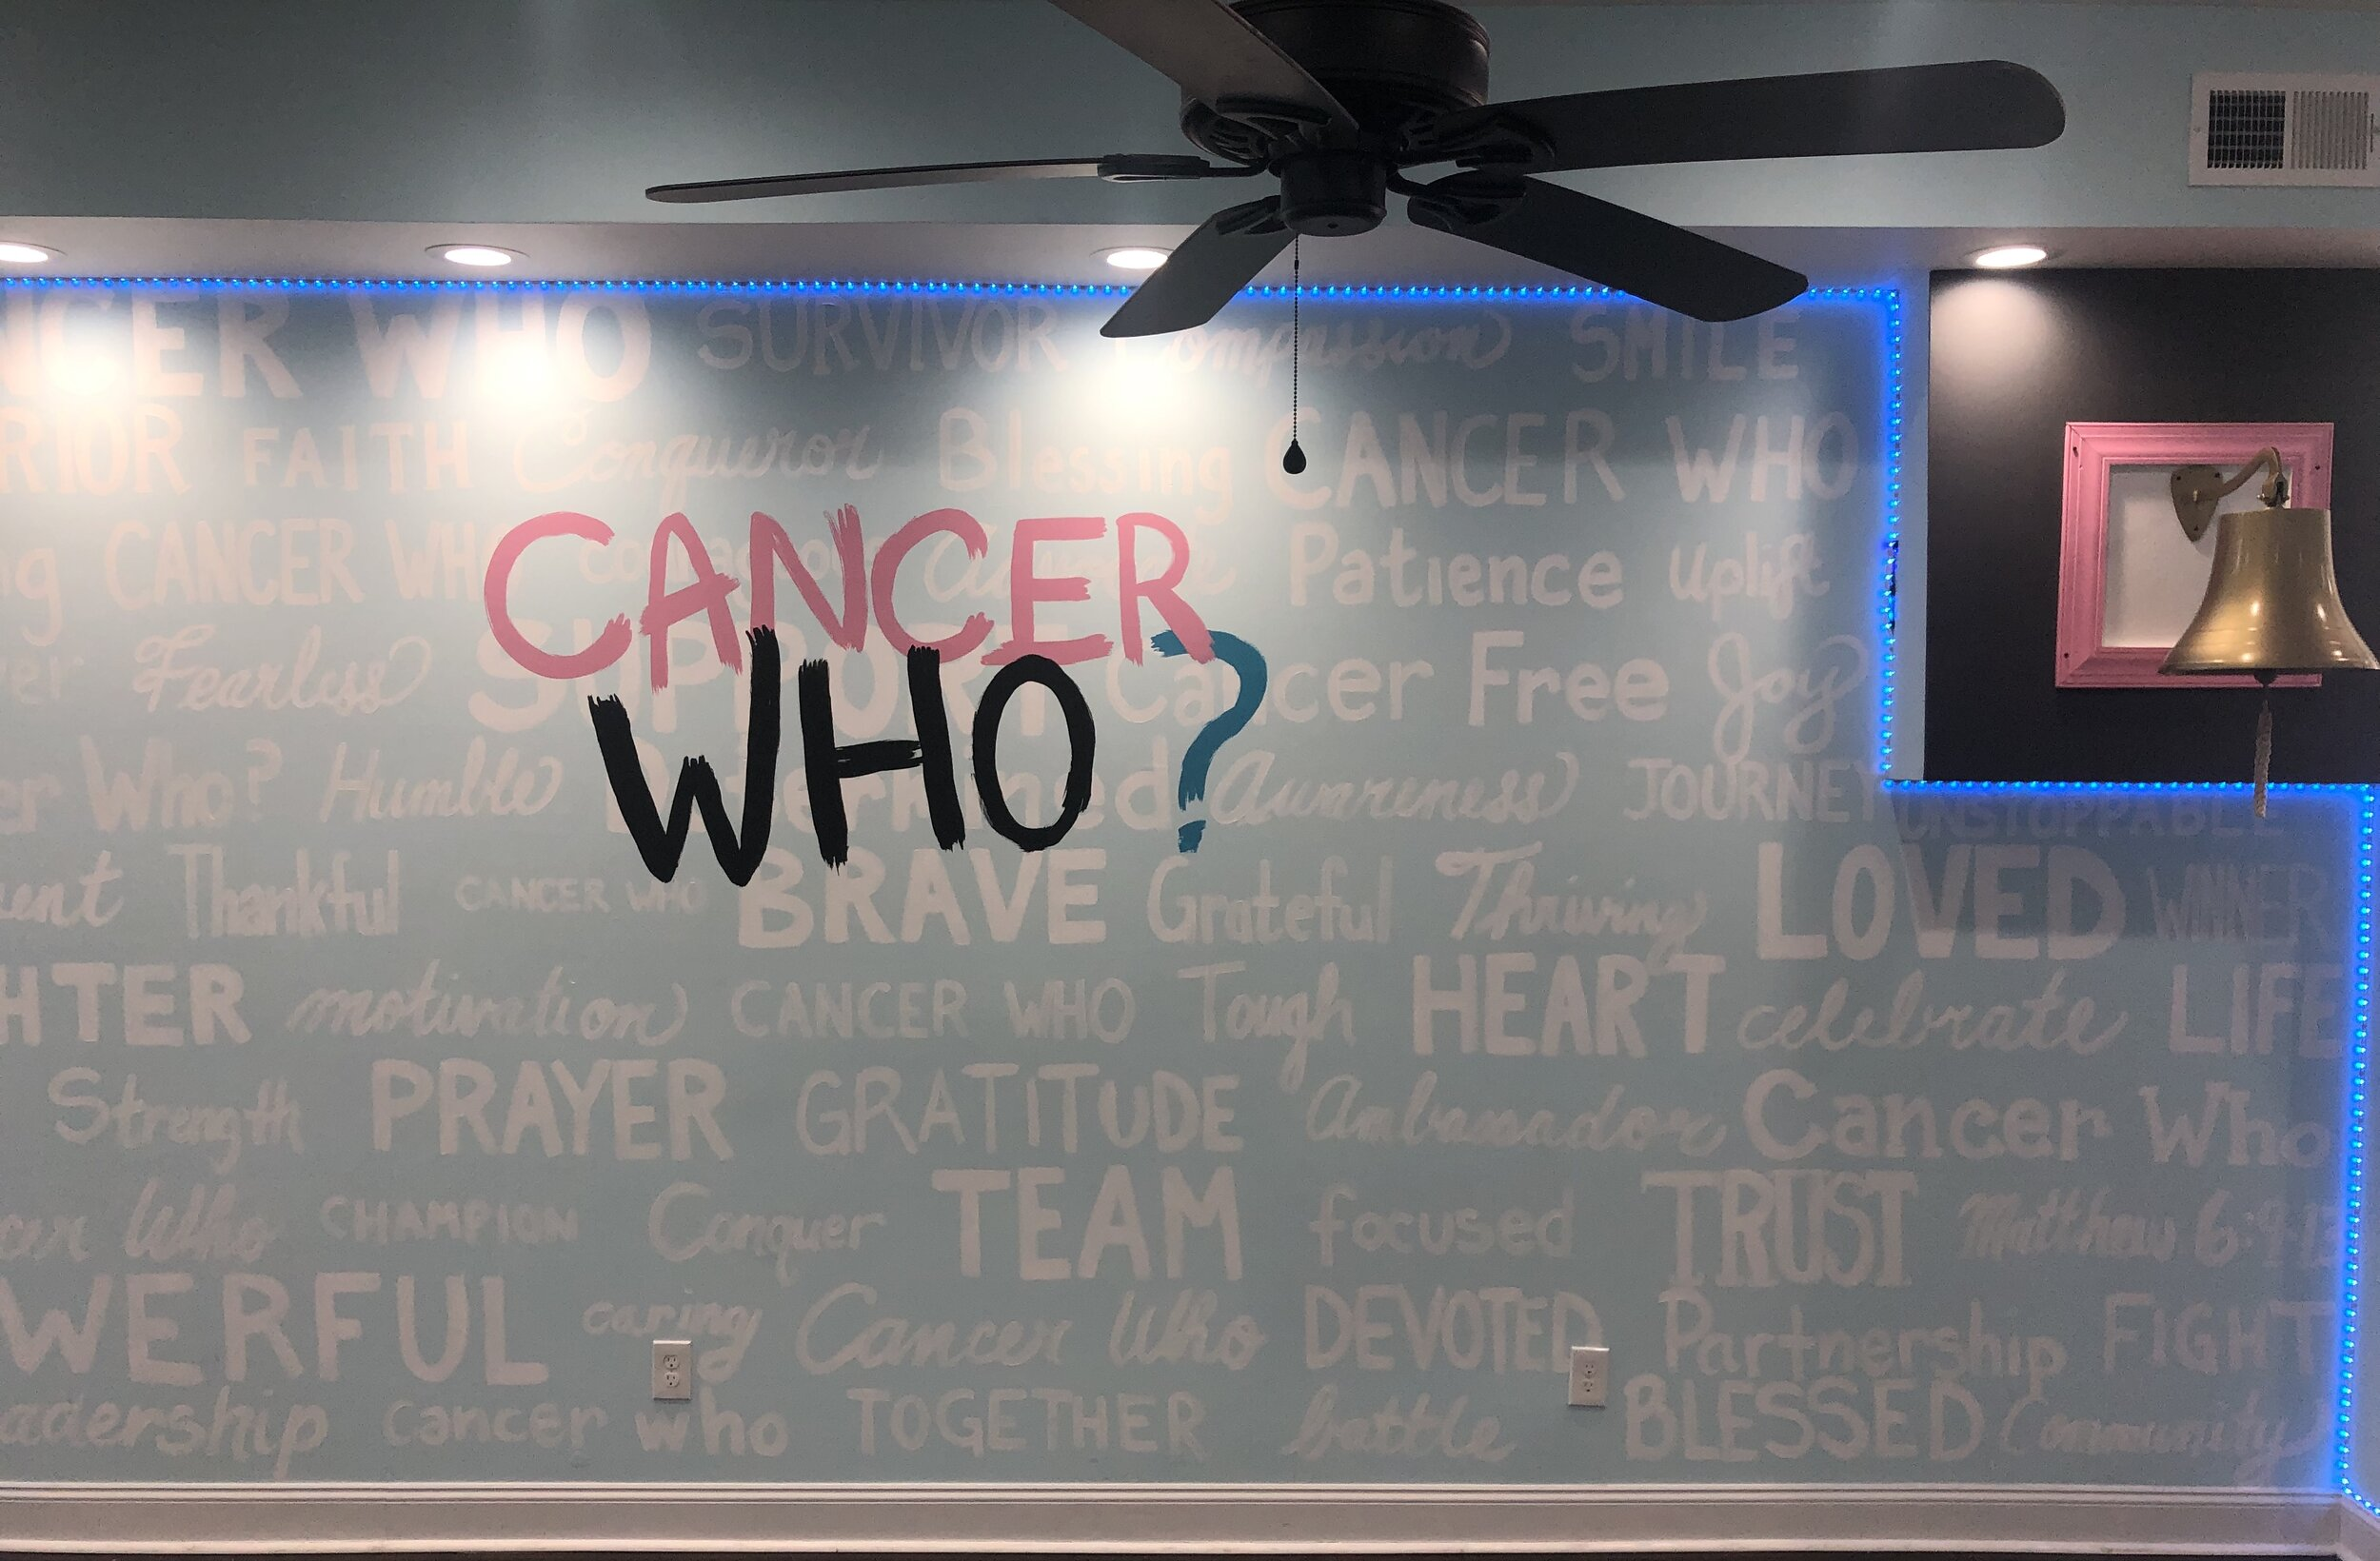 Cancer Who? (Picture provided by Al Harris)